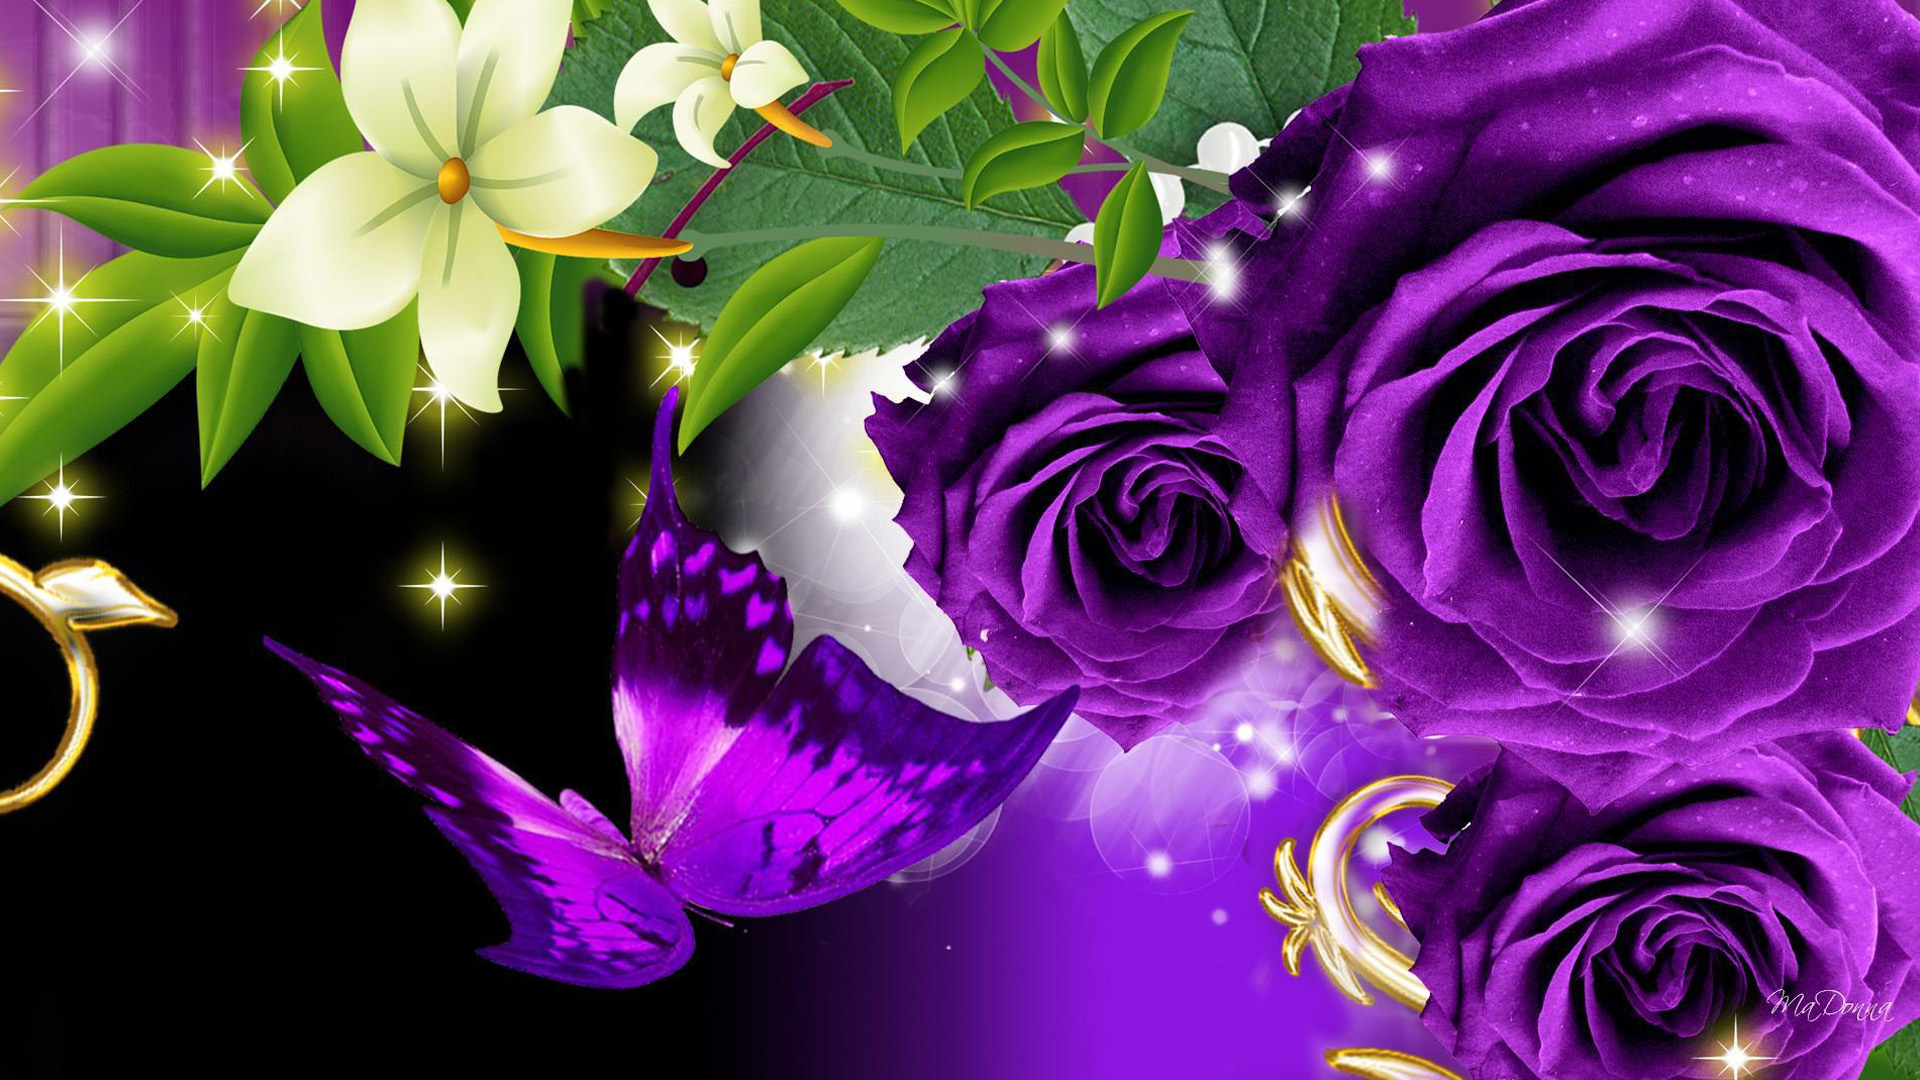 3d Rose Live Wallpaper Free Download Top 10 Beautiful Flowers Live Wallpapers Apps For Android